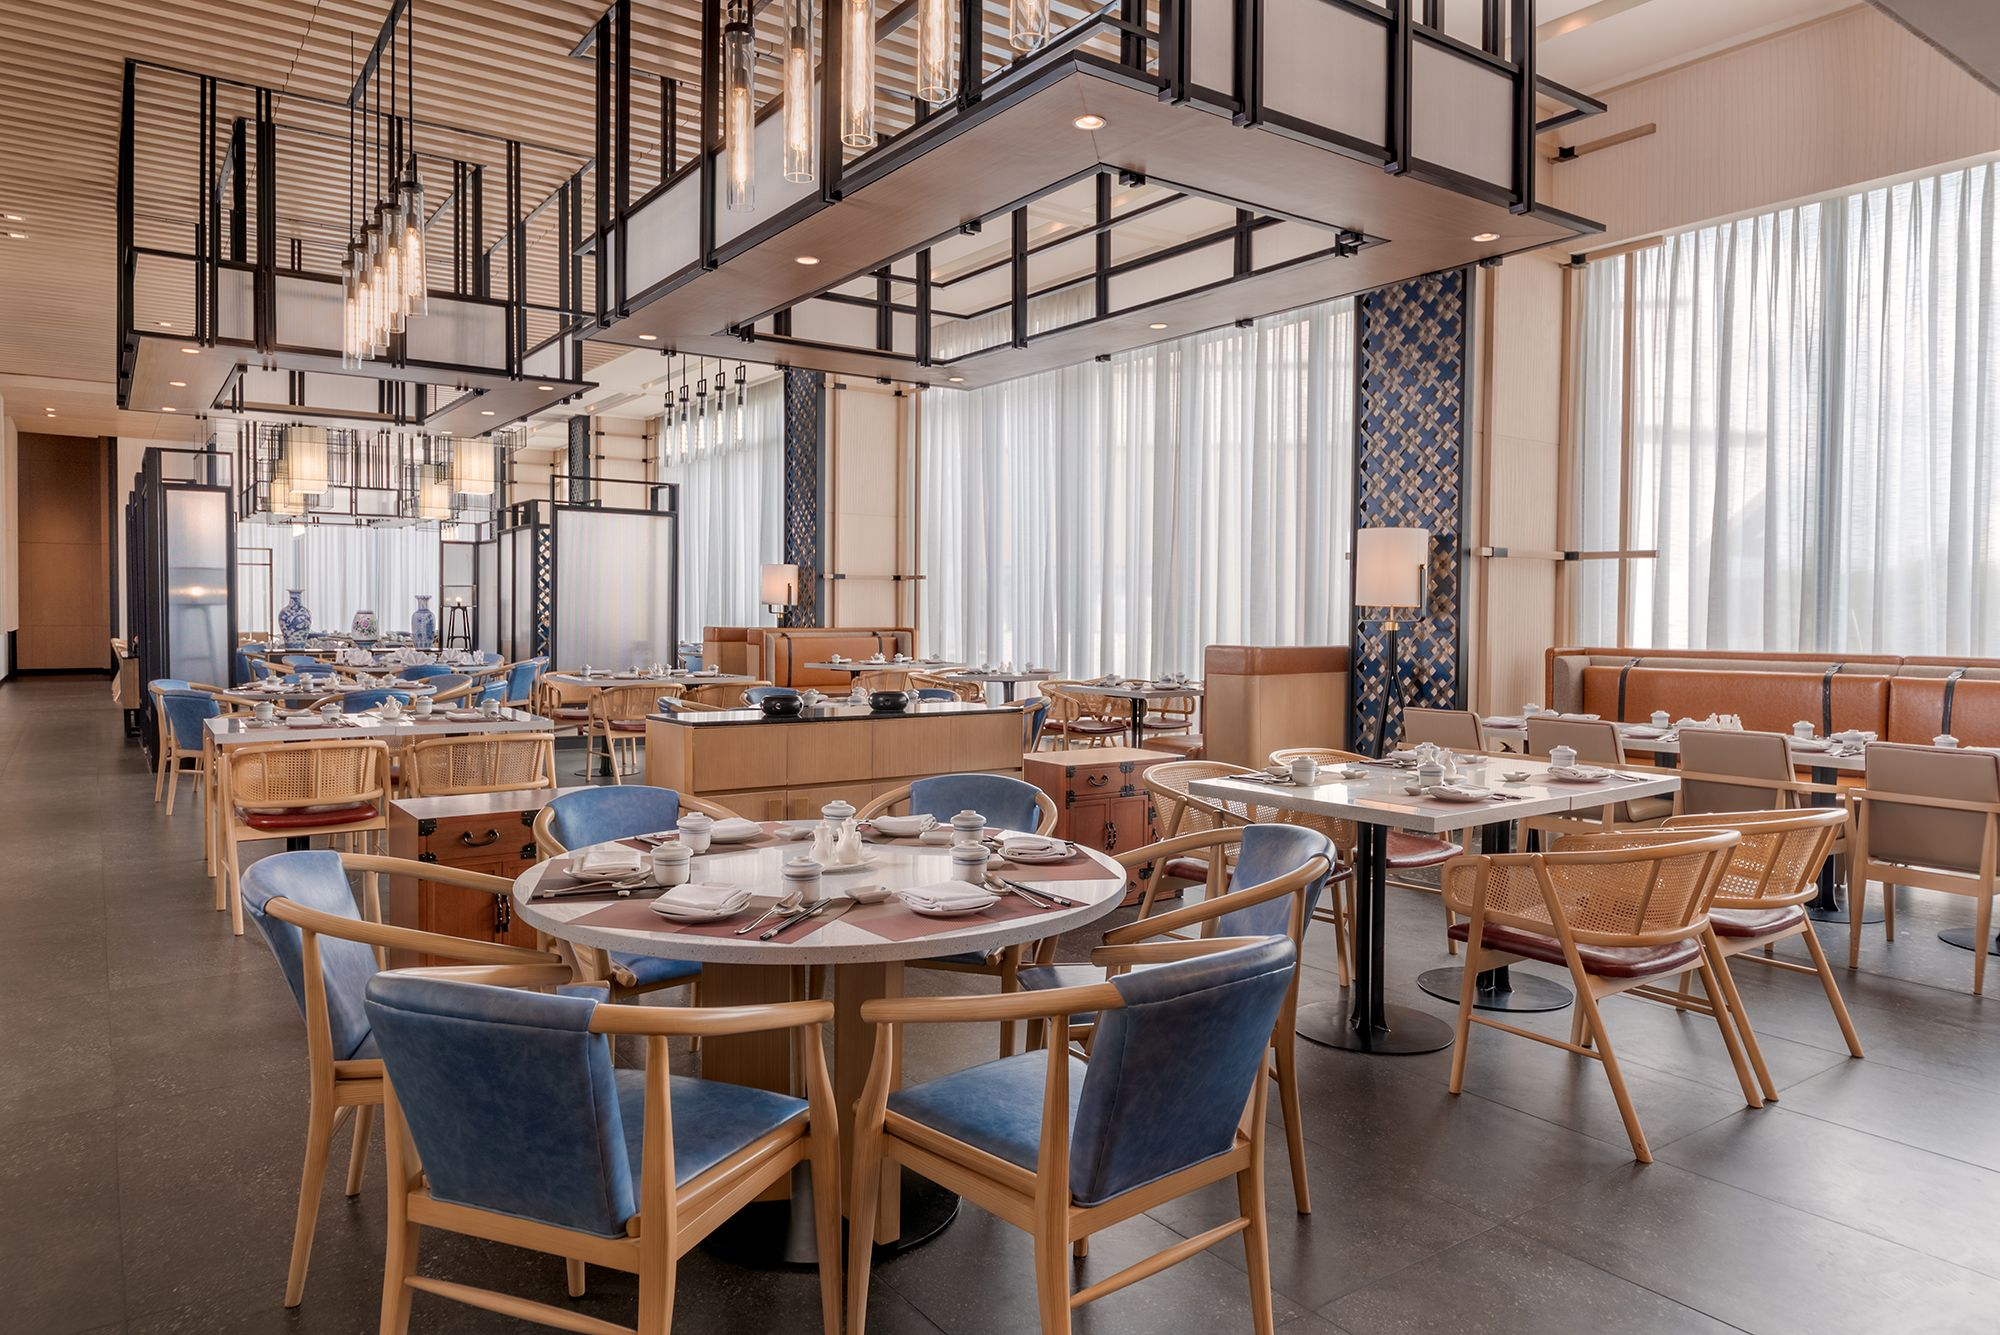 Pin Wei: A New Chinese Restaurant Opens in the Heart of Quezon City, Philippines